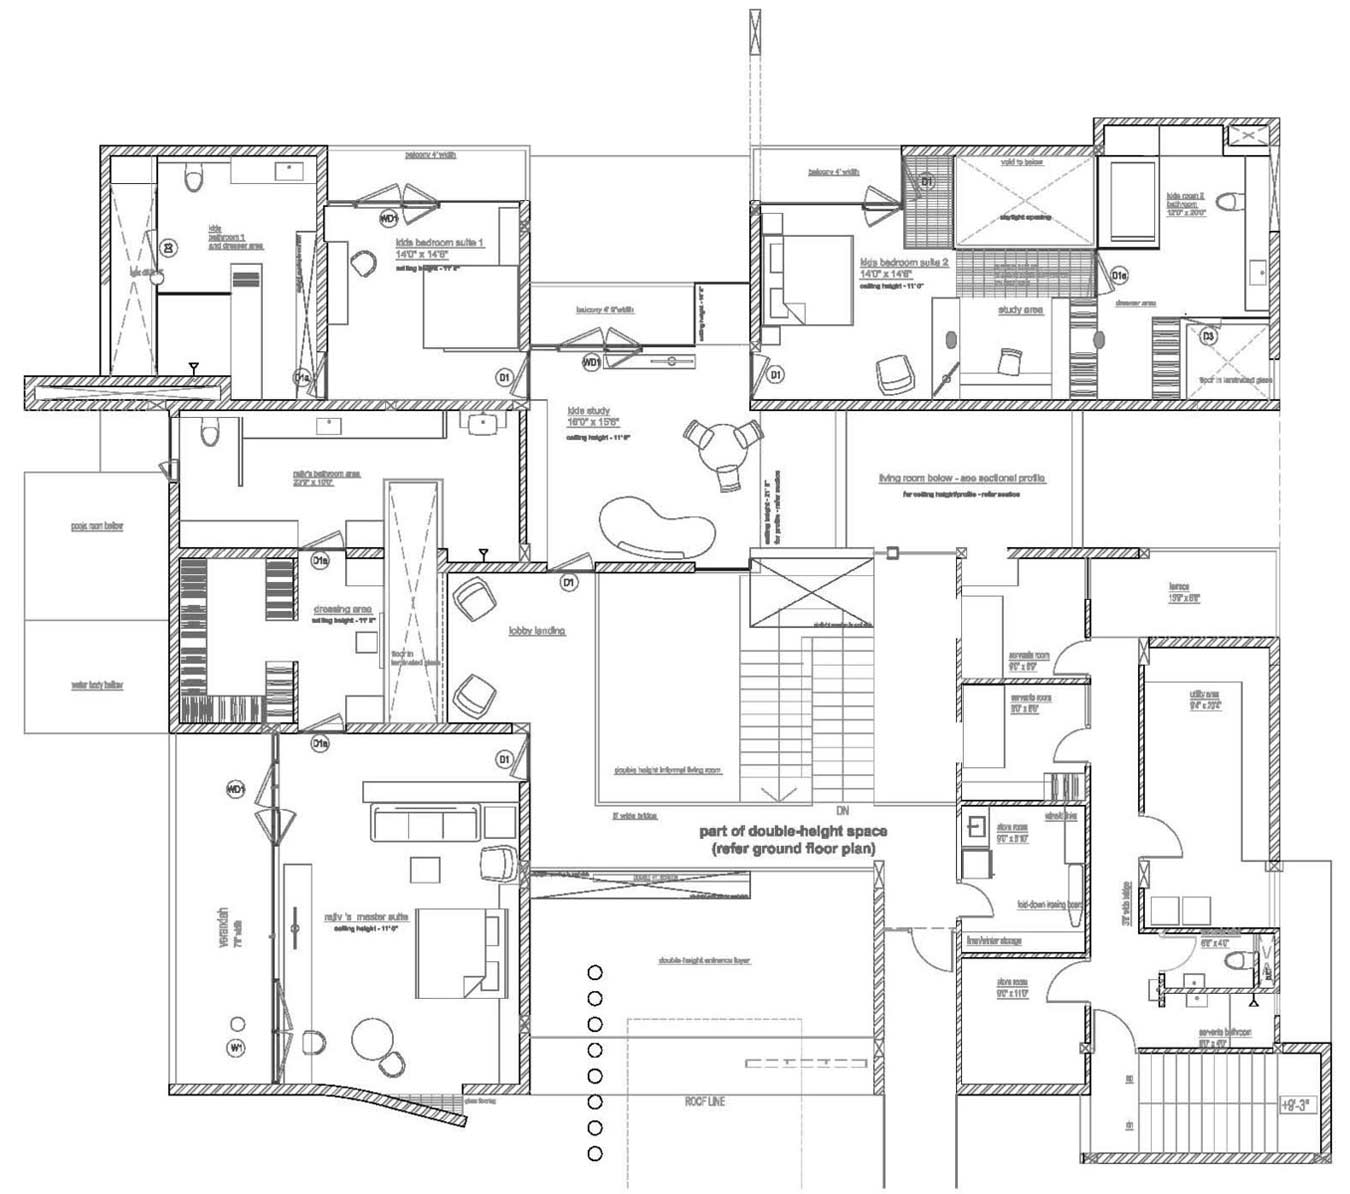 18205 moreover Circular Apartment Plans moreover Small Home Office Design Ideas With Pos as well 4 Bedroom L Shaped House Plans likewise Big Beautiful Mansions With Pools. on furniture bedroom with floor plans